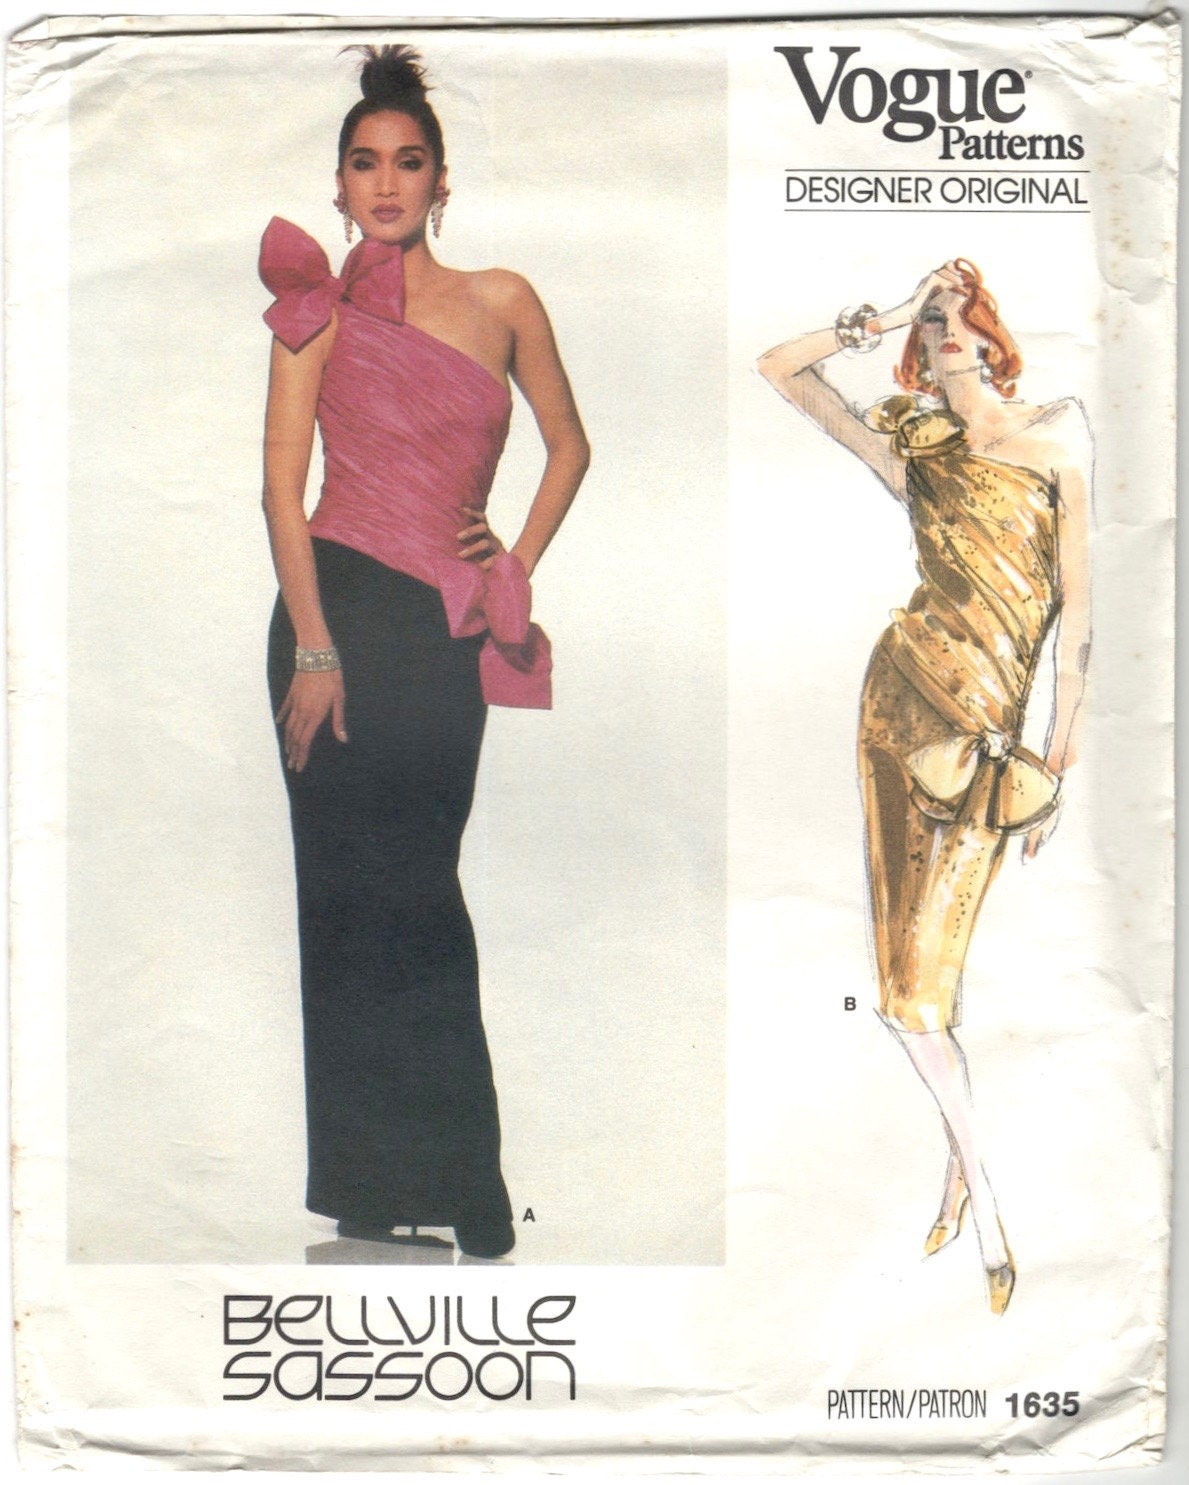 1980s Bellville Sassoon formal dress pattern - Vogue 1635